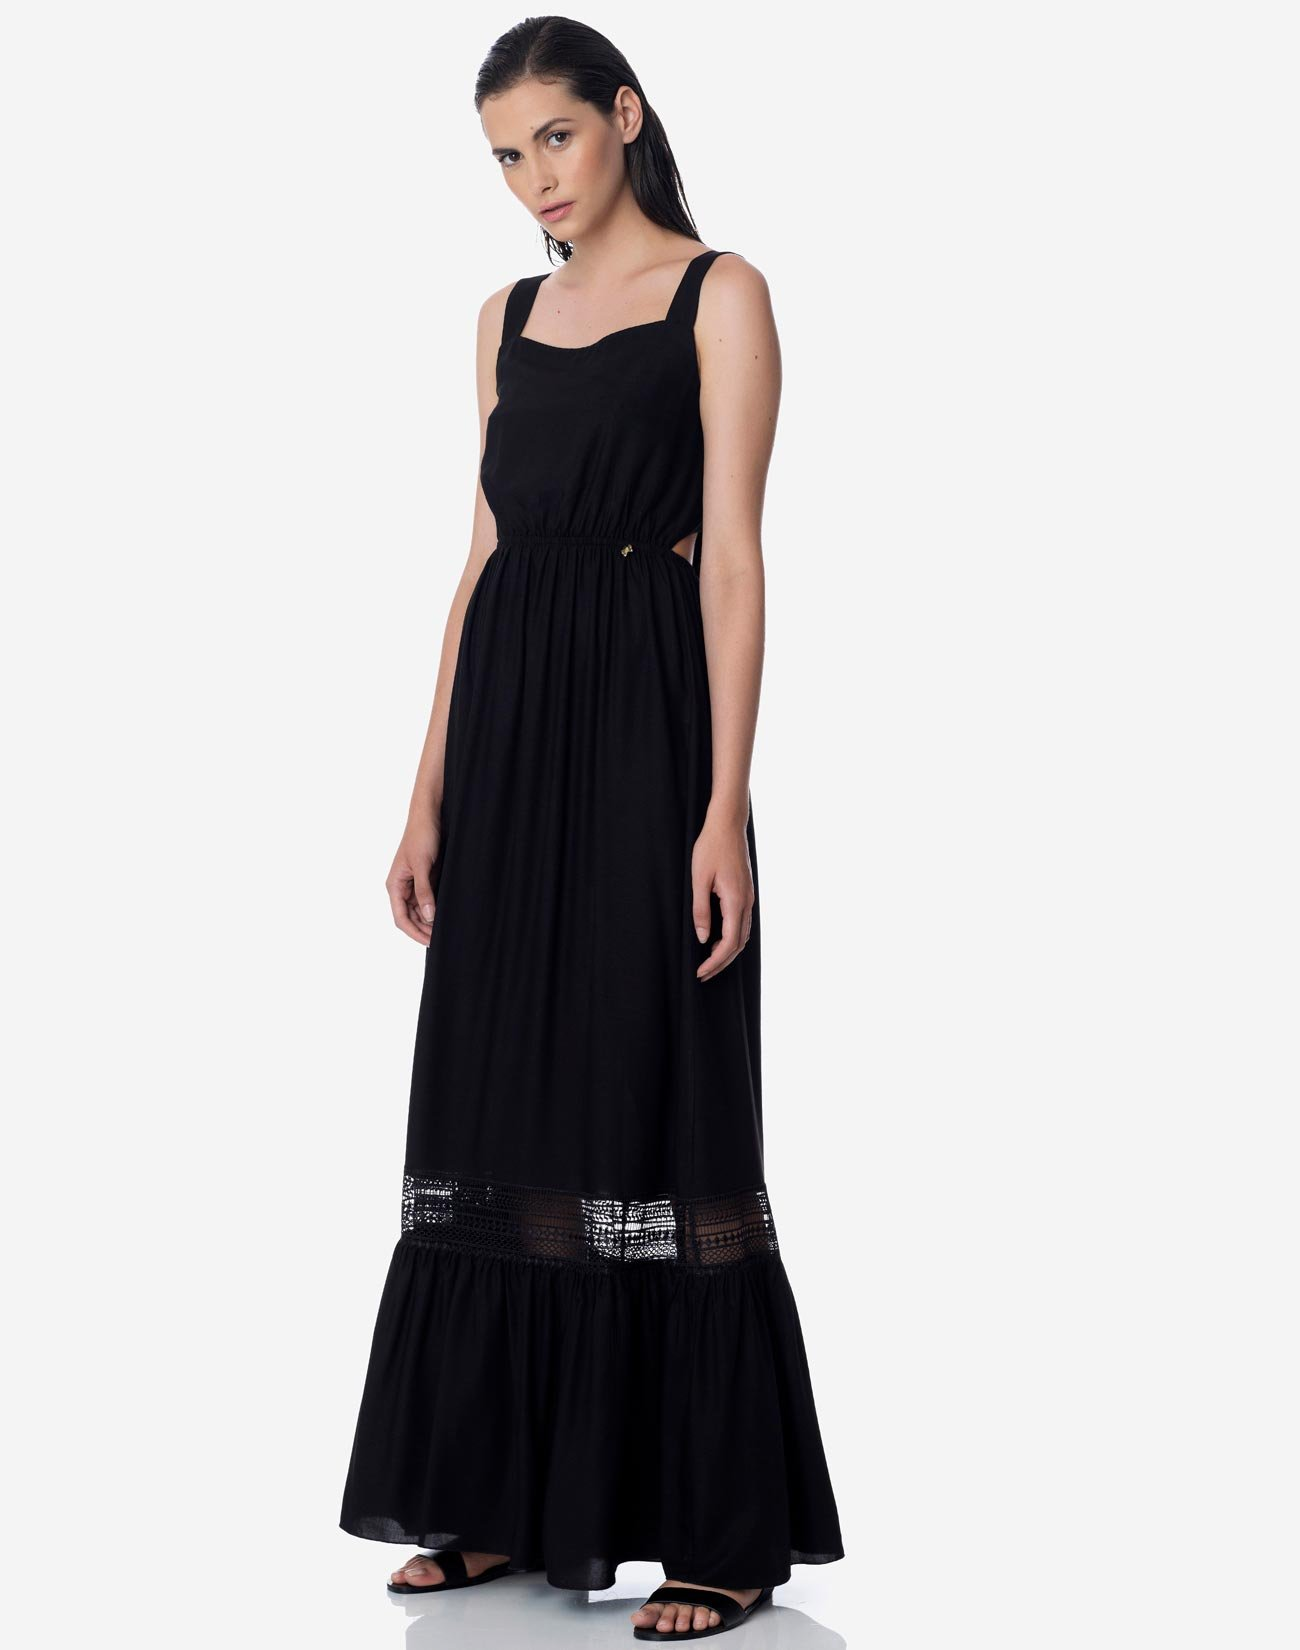 Maxi dress with bow detail